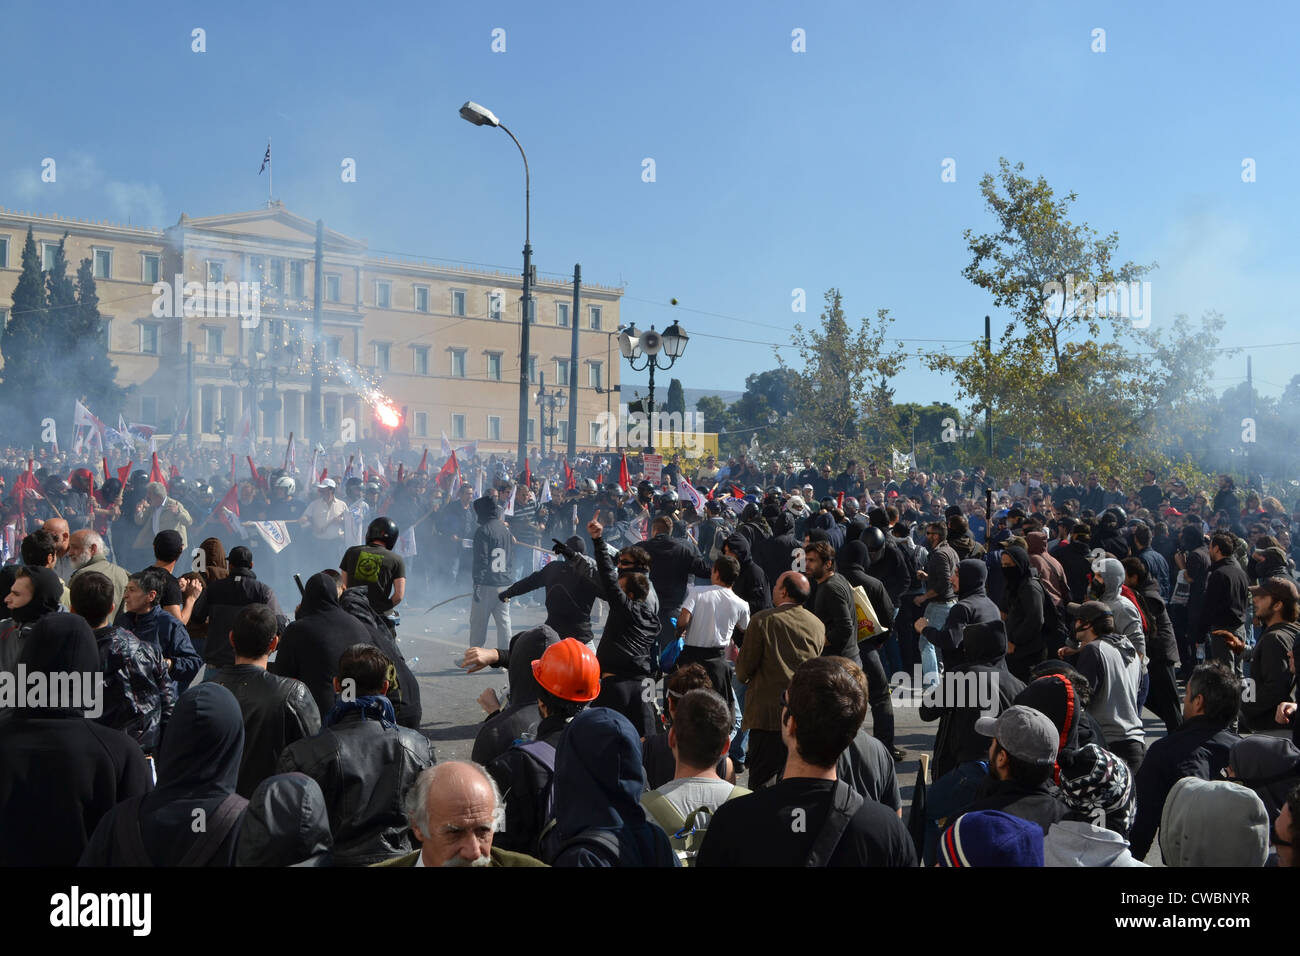 Anarchists clash with communists in front of the Greek Parliament during a general anti-austerity strike in Athens. - Stock Image